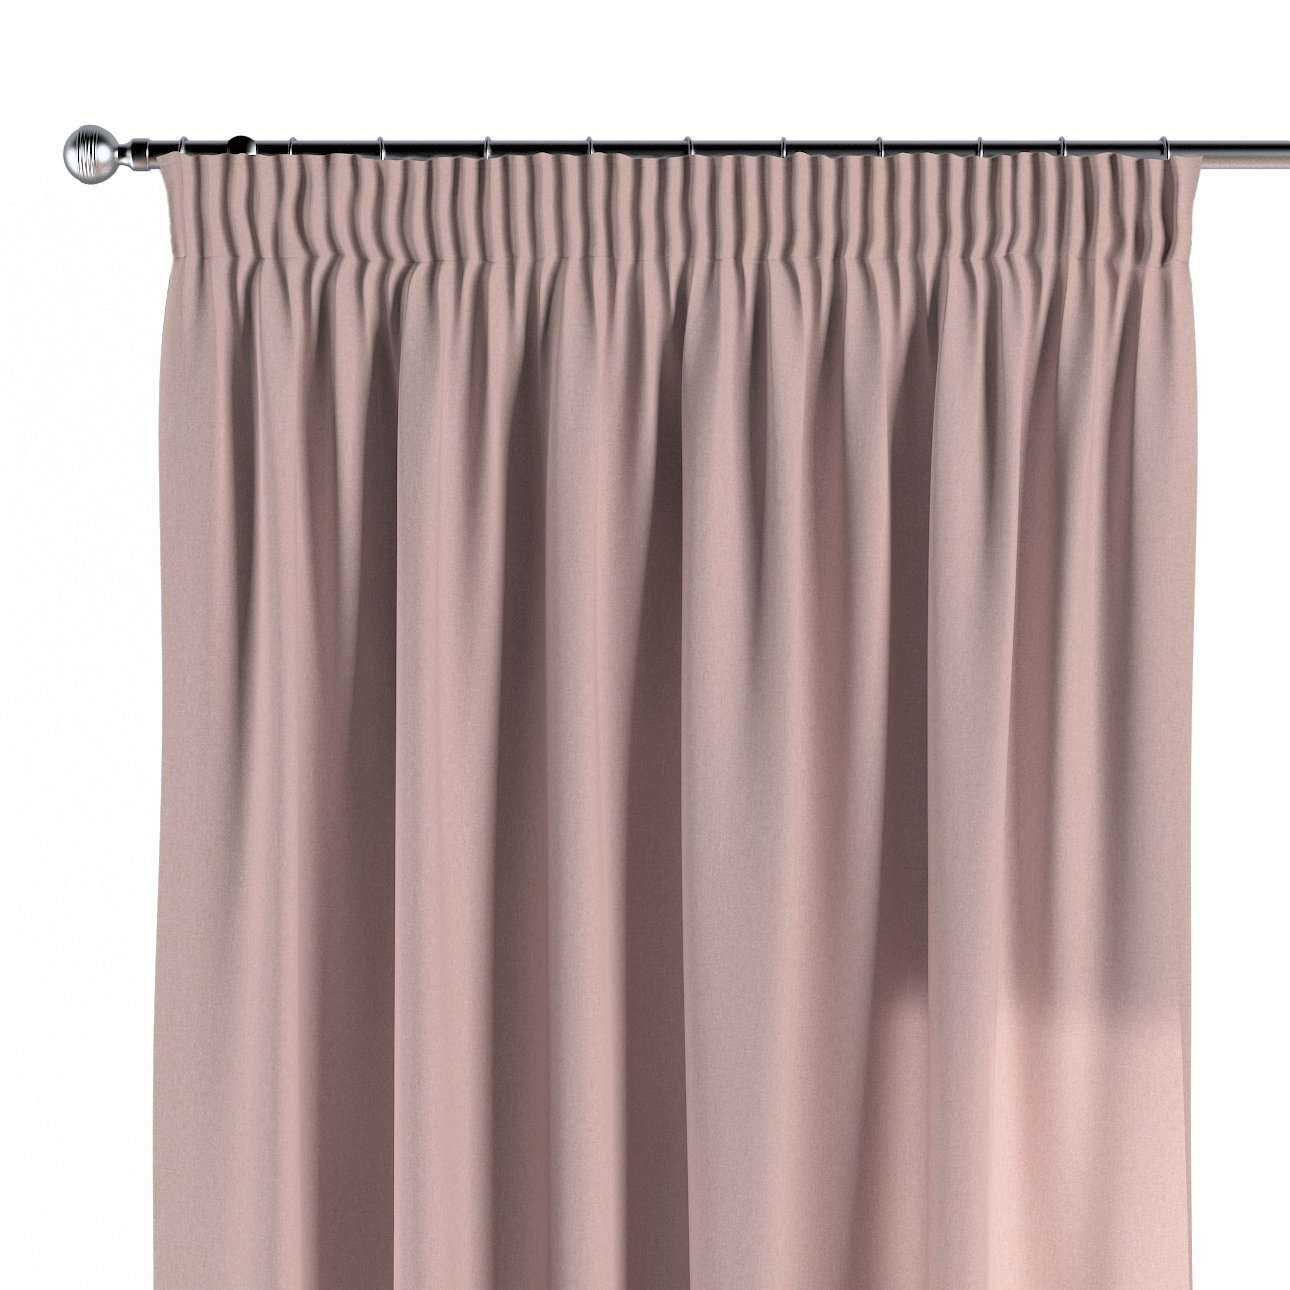 Pencil pleat curtains in collection Woolly, fabric: 142-38